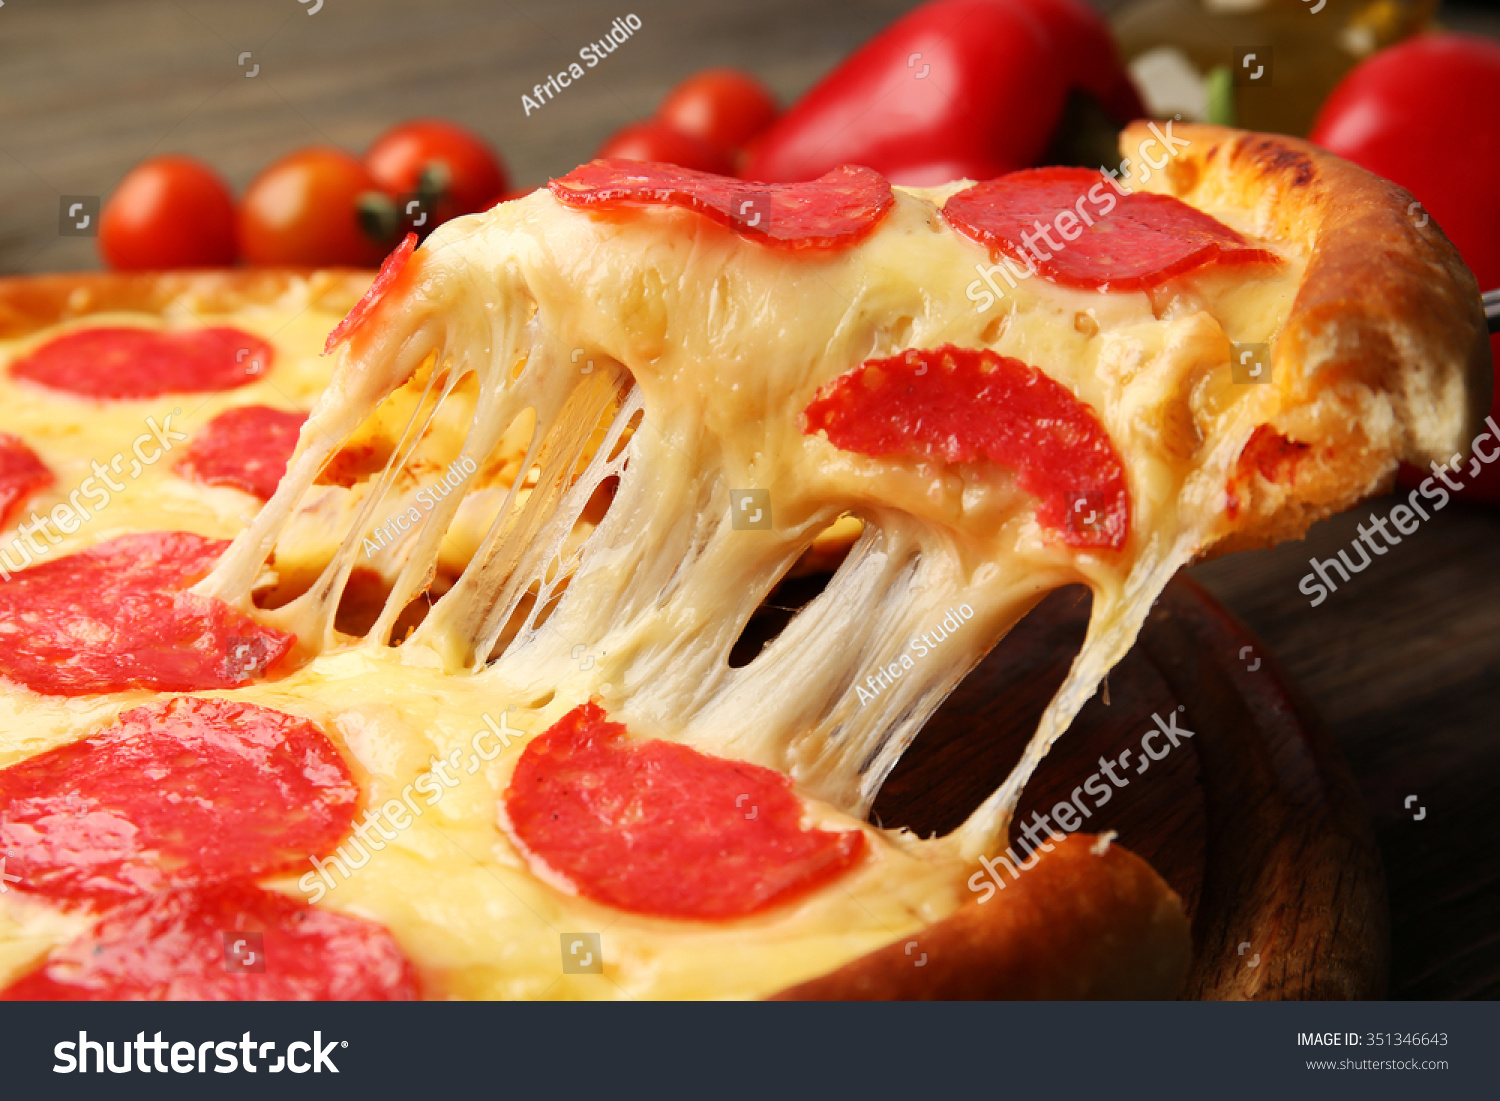 Hot Tasty Pizza Salami Close Stock Photo 351346643